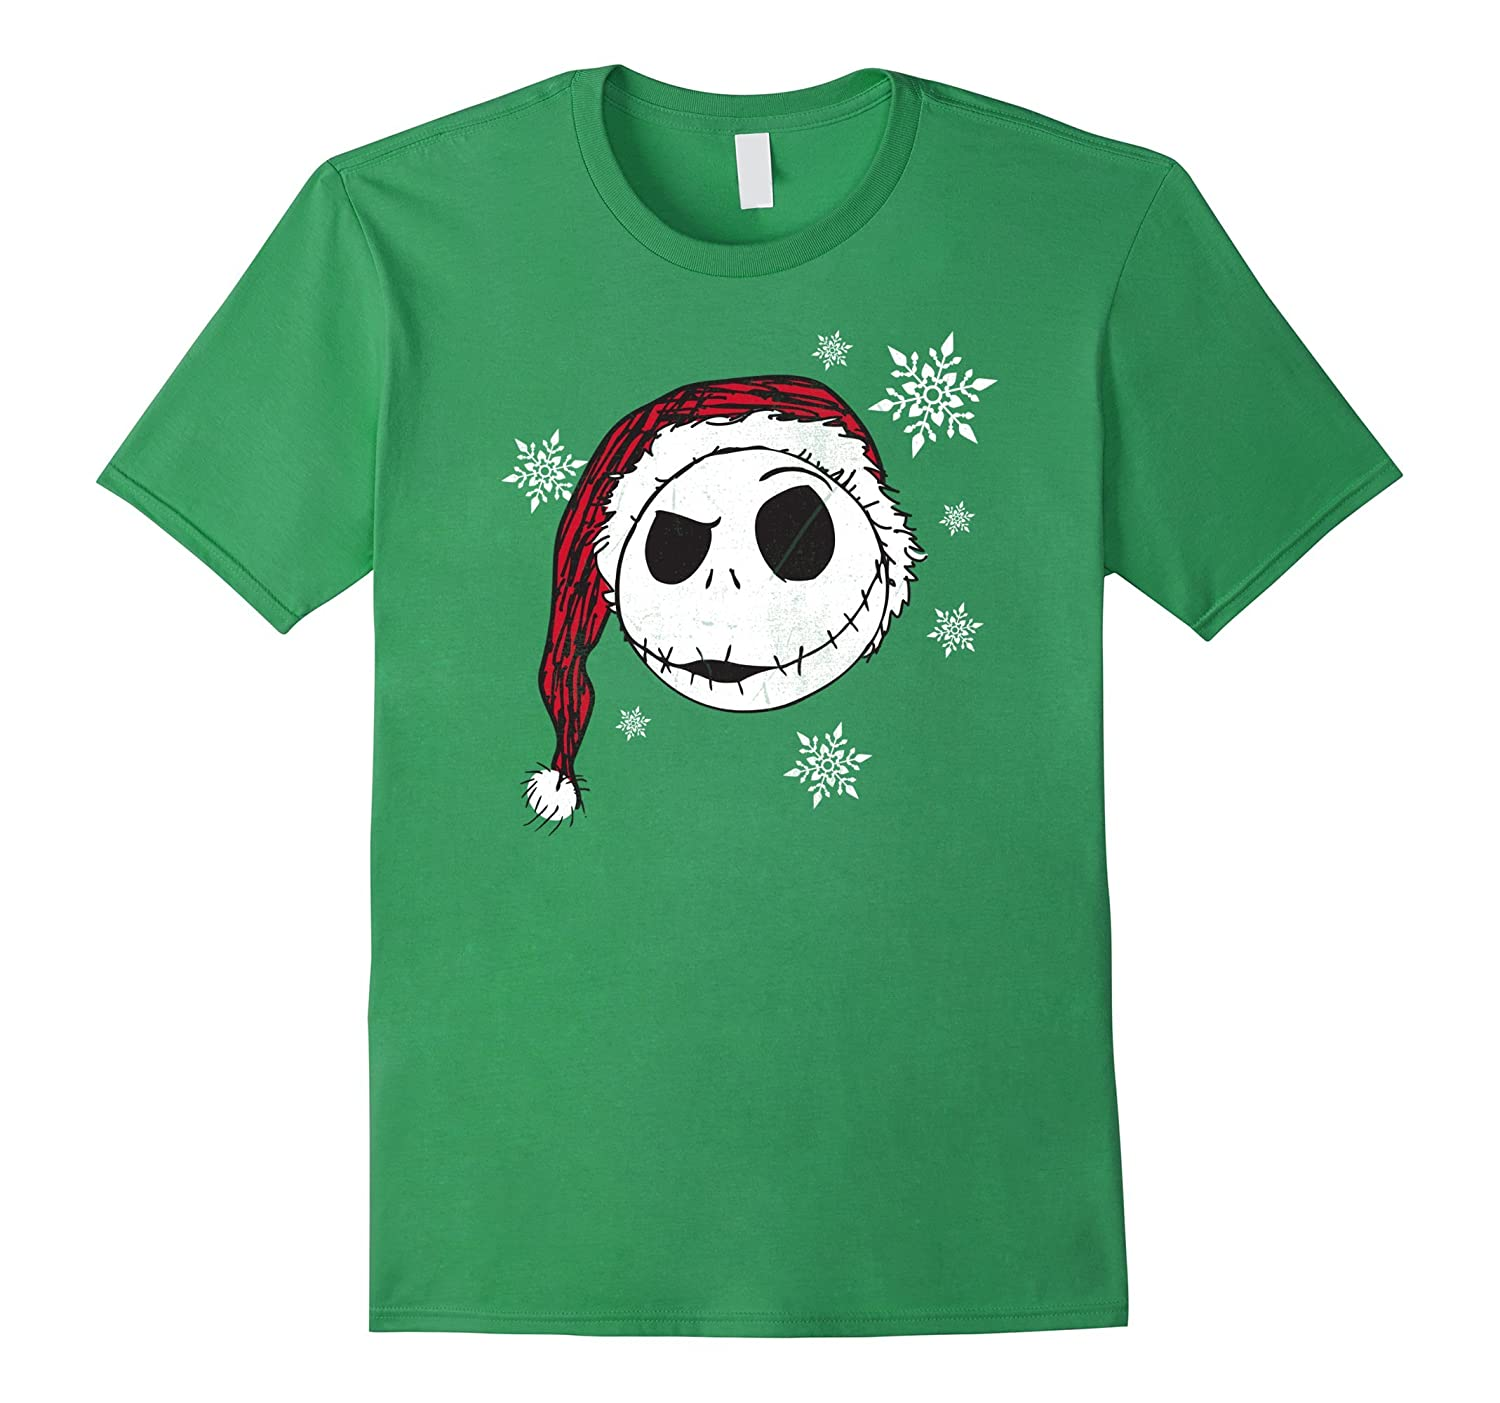 Disney Nightmare Before Christmas Snowflake Tshirt-TJ – theteejob